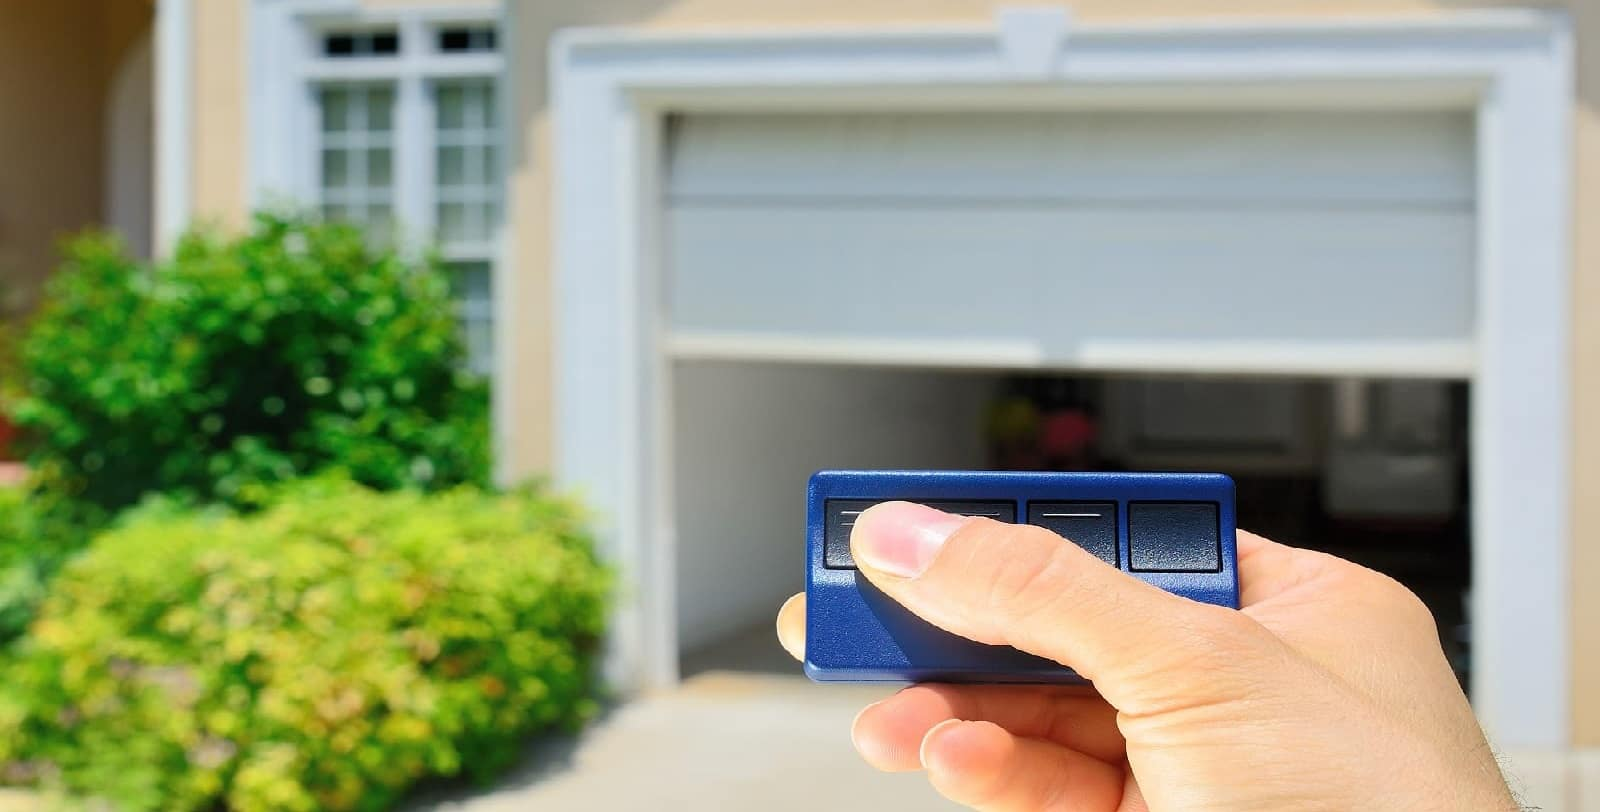 https://devices4home.com/wp-content/uploads/2019/03/Garage-Door-Opener.jpg